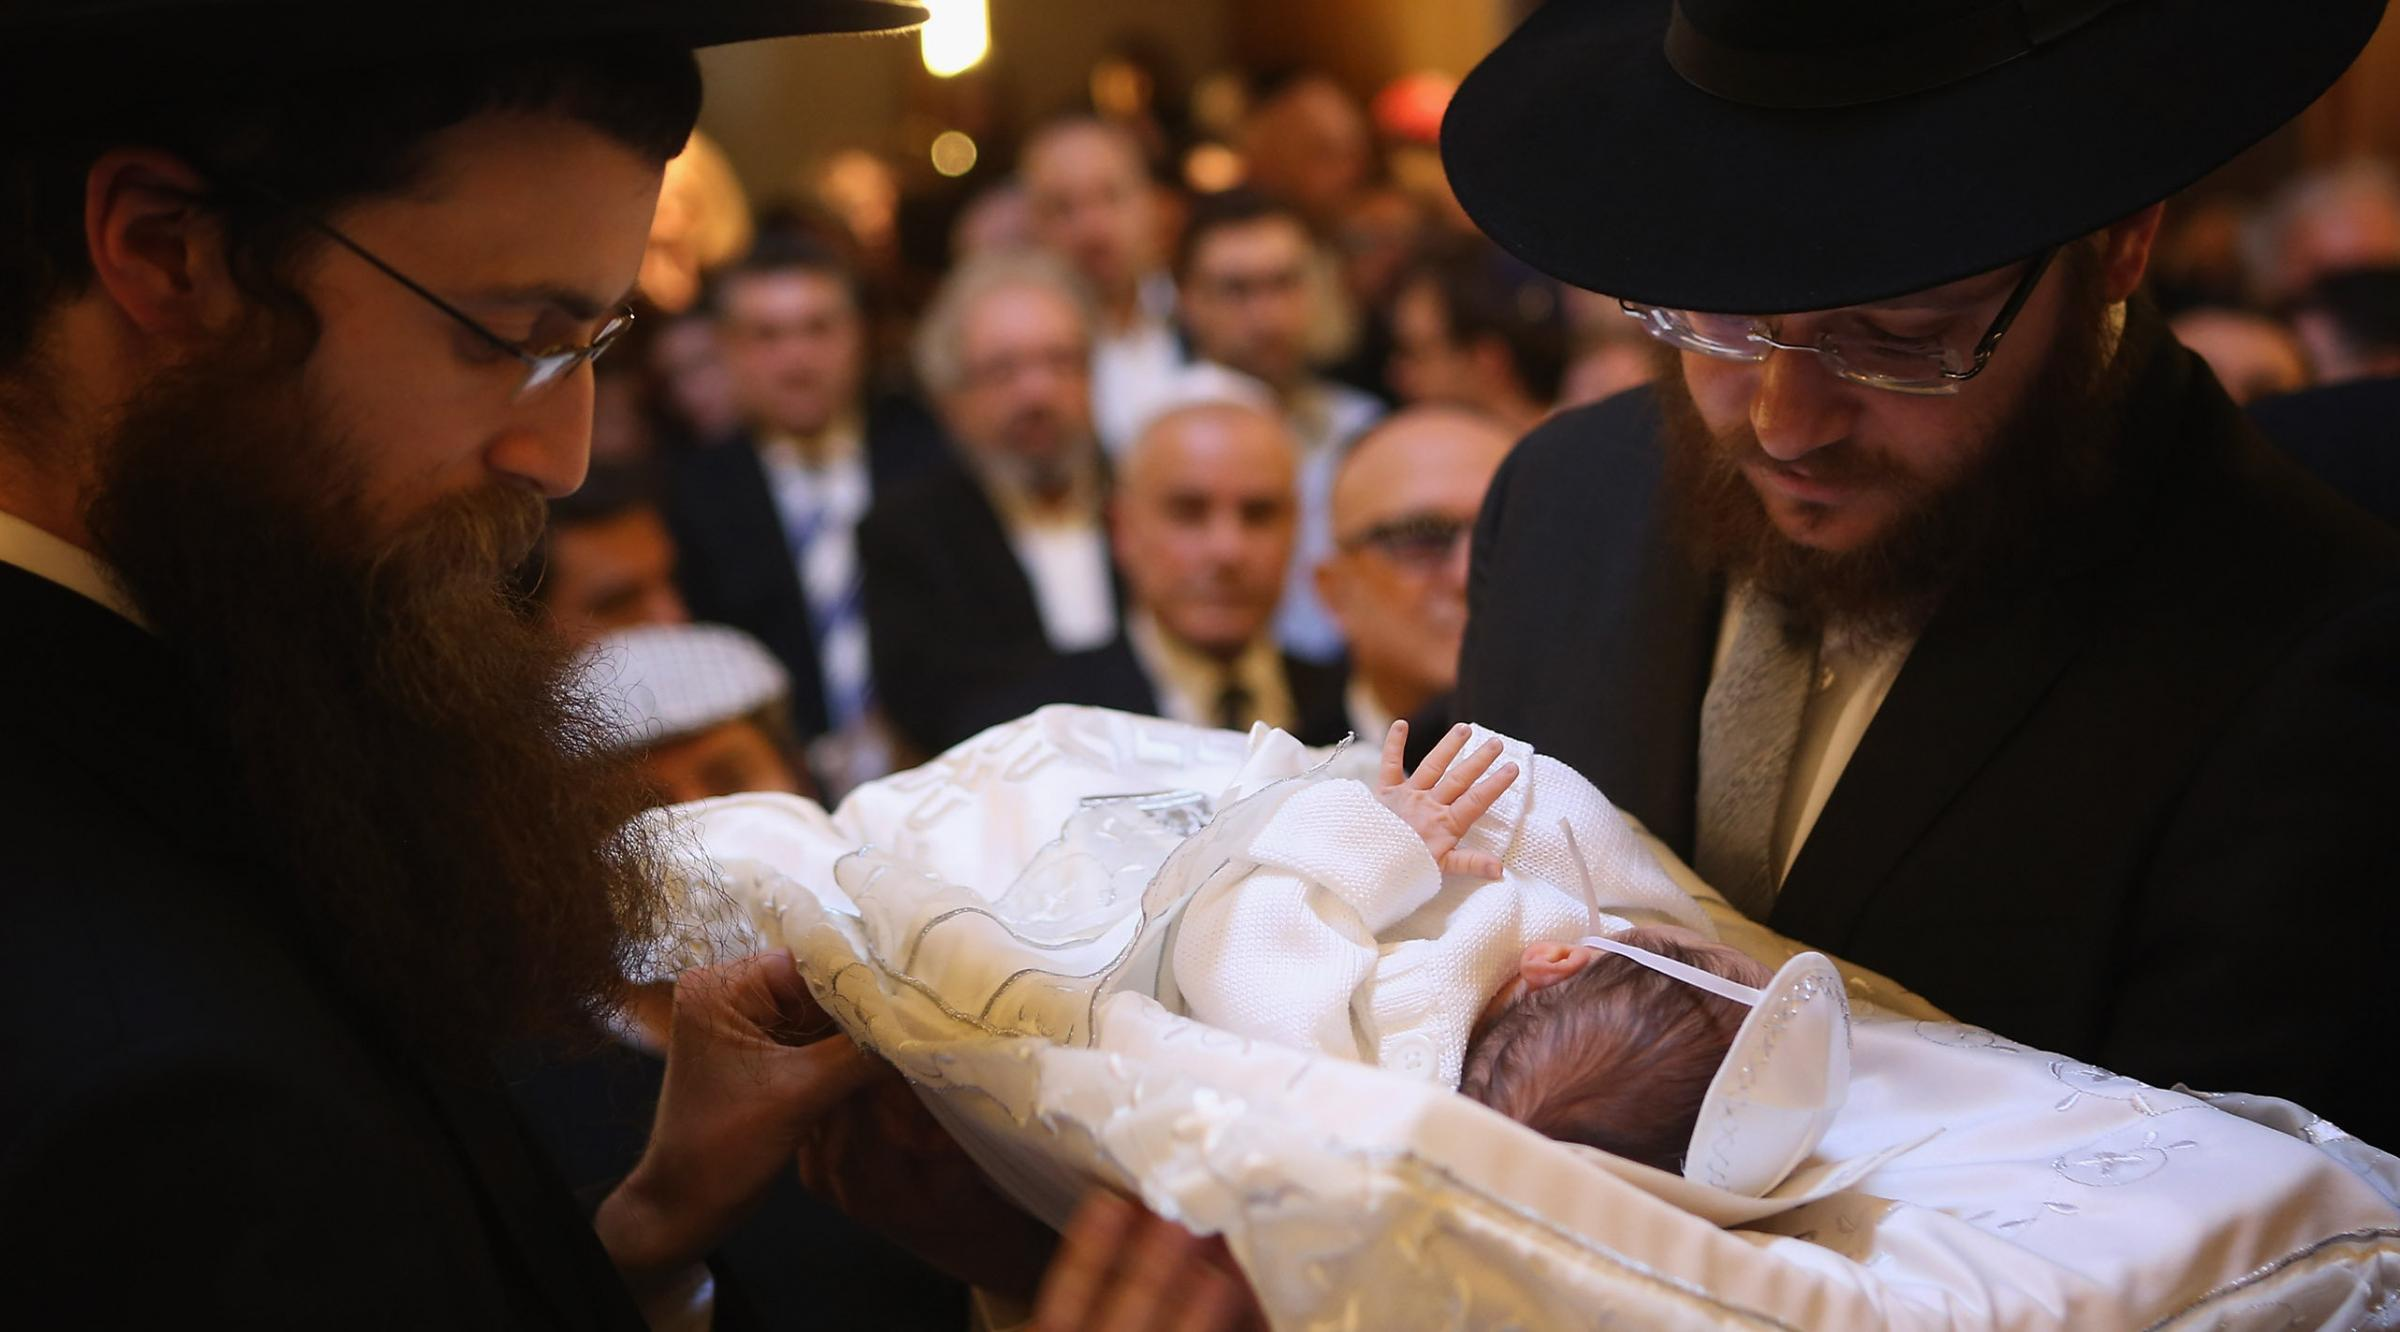 Orthodox Jews pass a baby infant to one another before his circumcision at the Chabad Lubawitsch Orthodox Jewish synagogue in Berlin, Germany